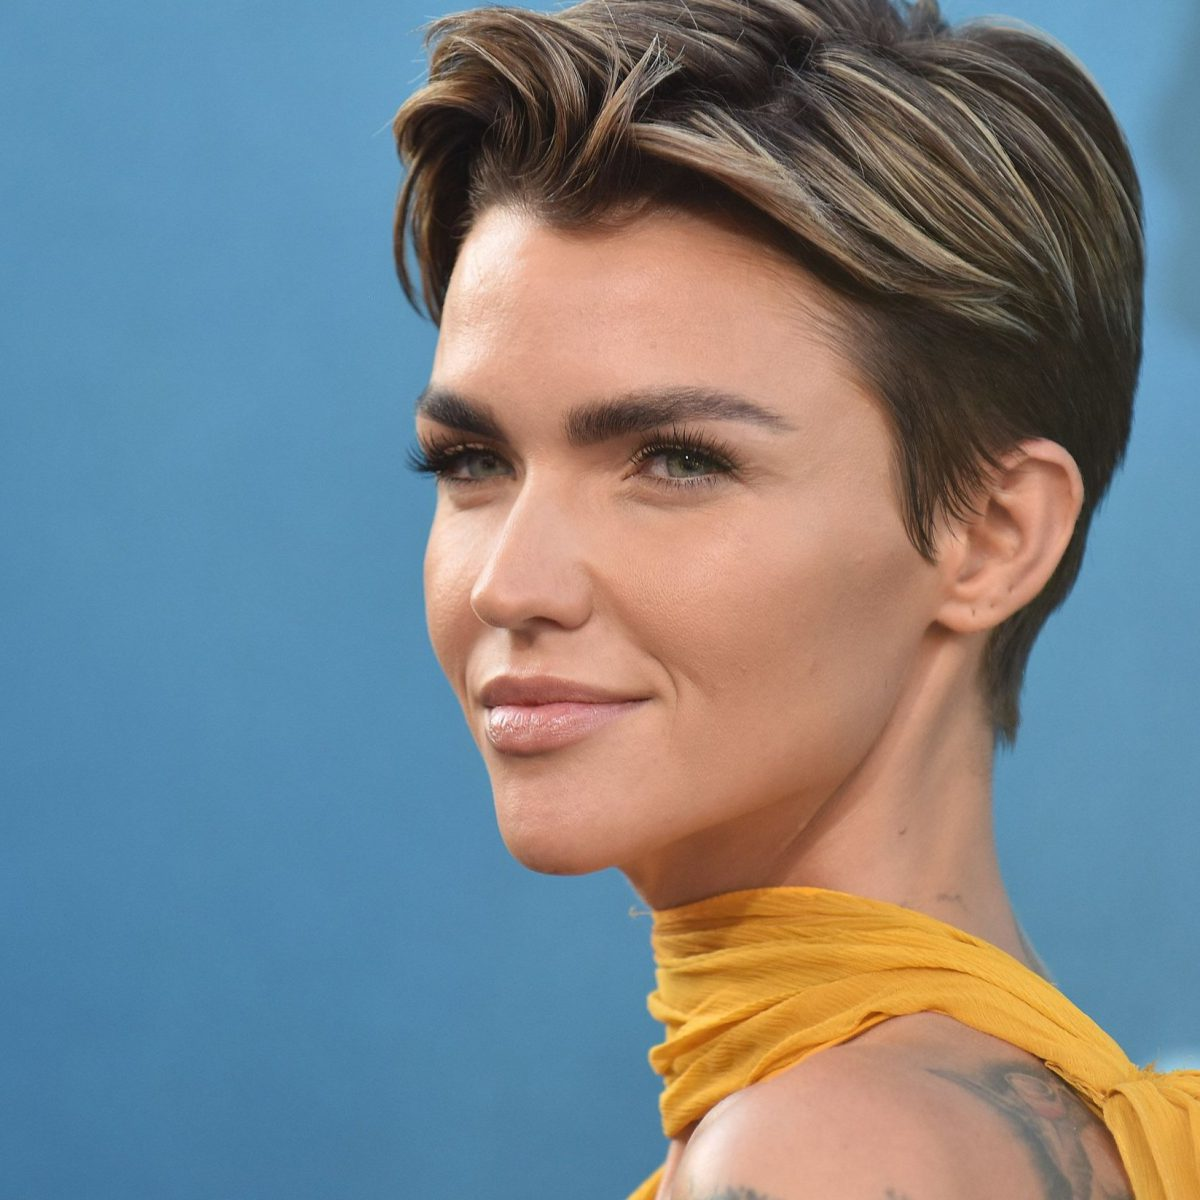 Ruby Rose Quits Twitter